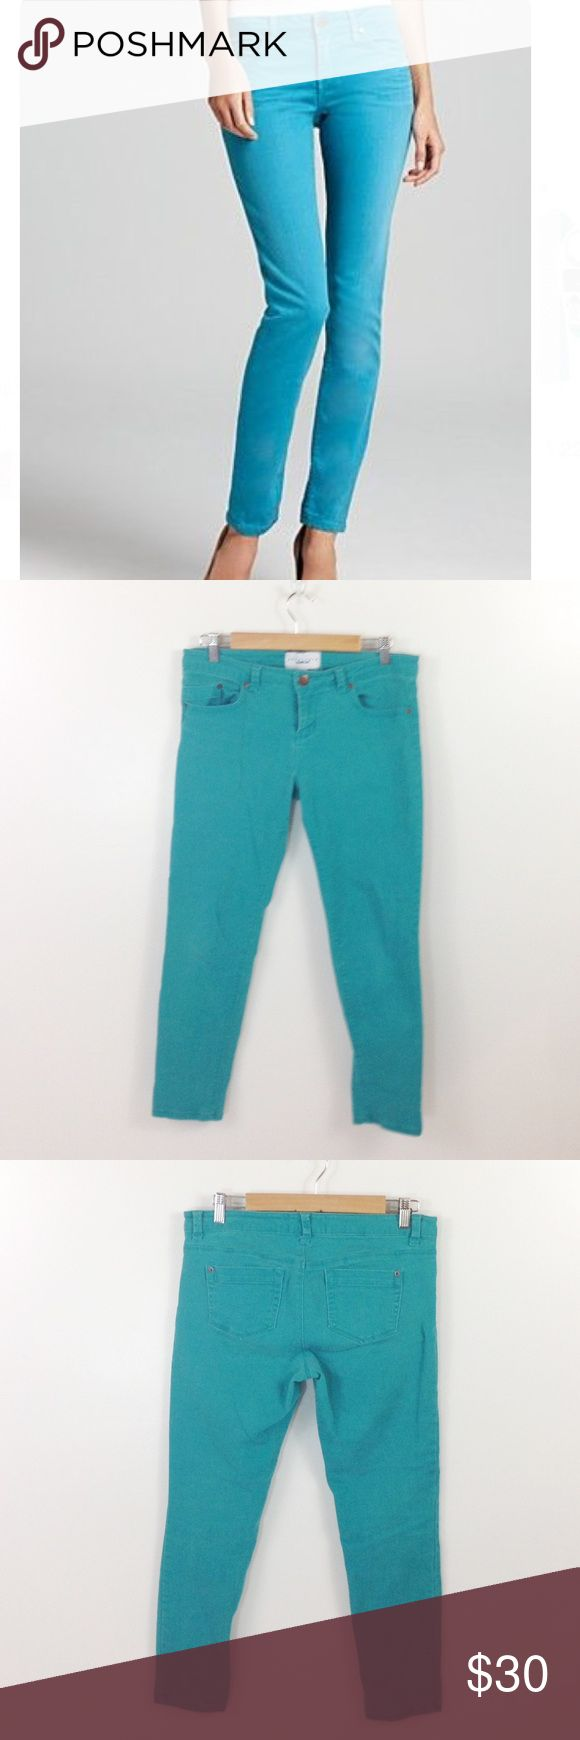 """👑NEW ARRIVAL Teal Skinny Jeans Sanctuary Pants Sanctuary Denim in a bright Teal color. Some wash wear but no other issues. Waistband 34"""". Rise 8.5"""". Inseam 27.5"""". Sanctuary Jeans Skinny"""